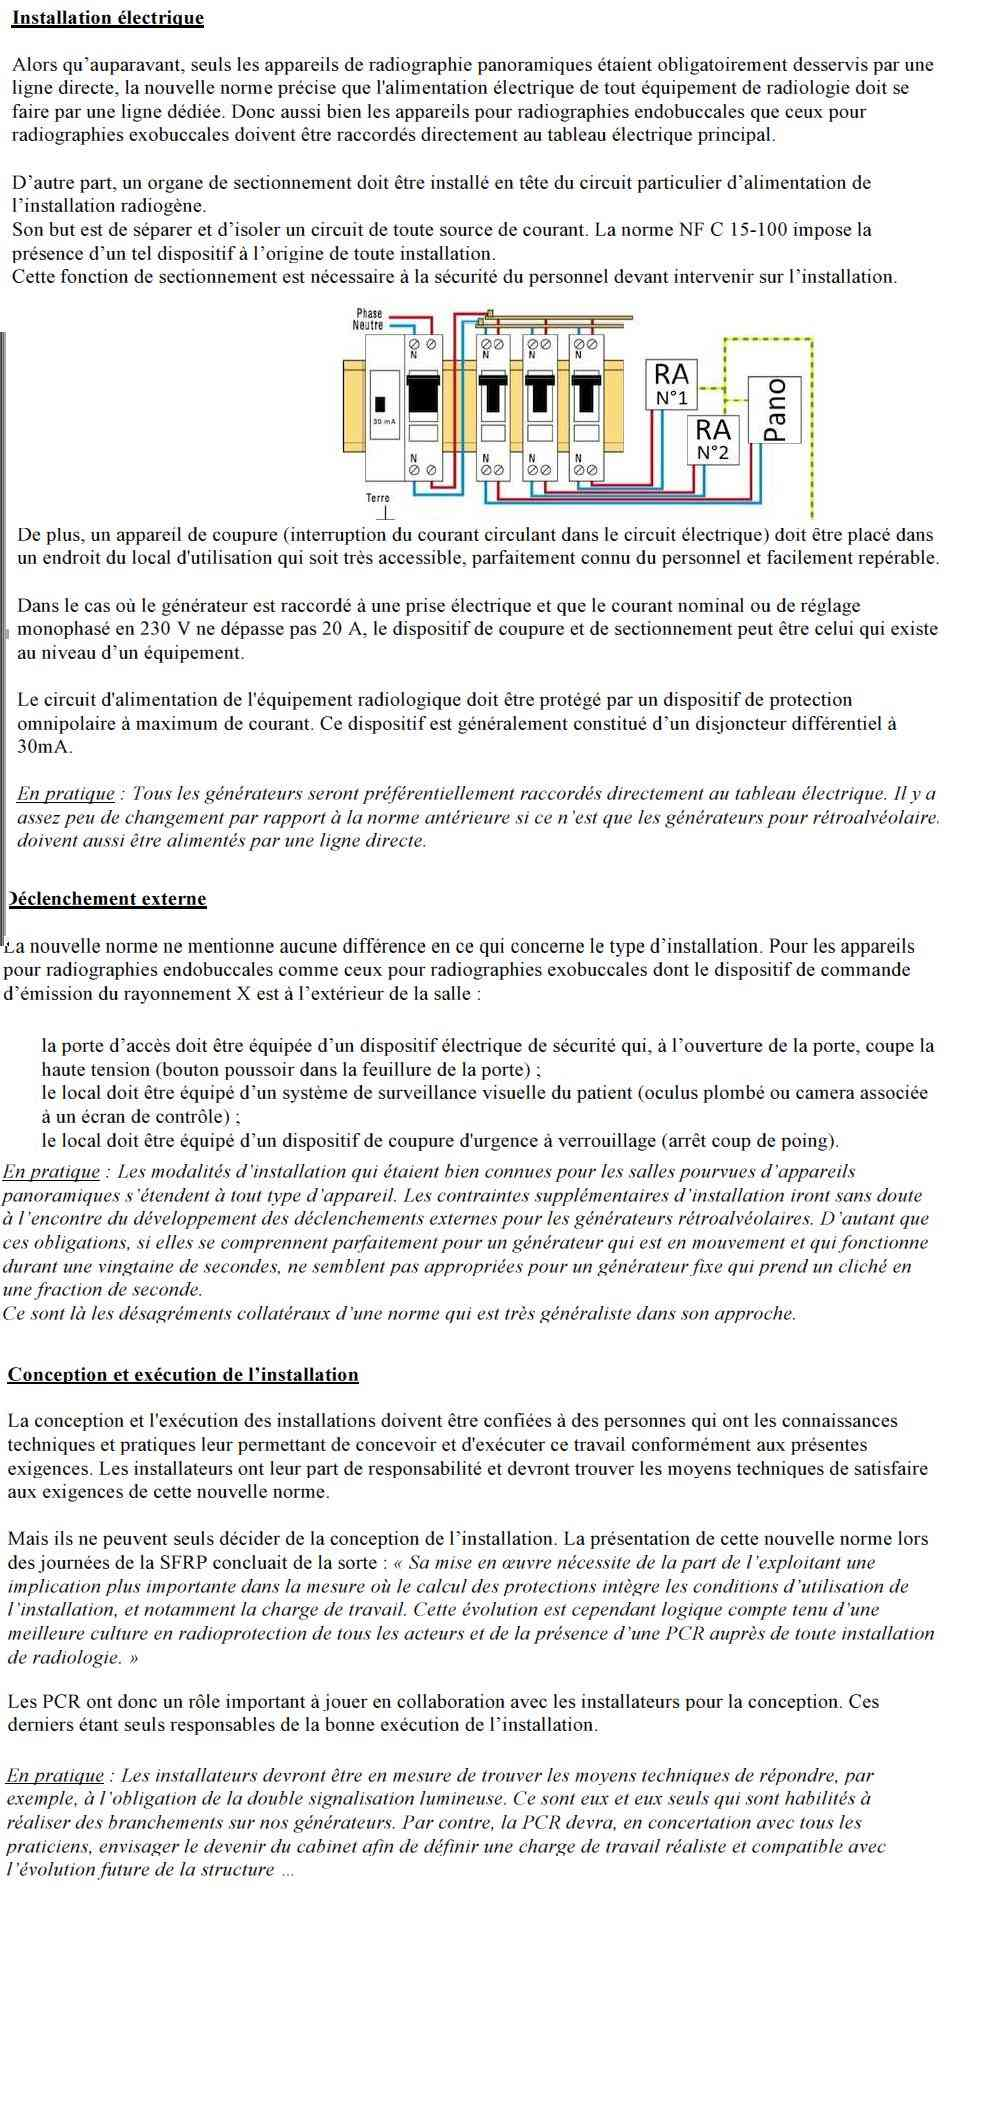 Double signalisation panoramique - Page 3 Electr10